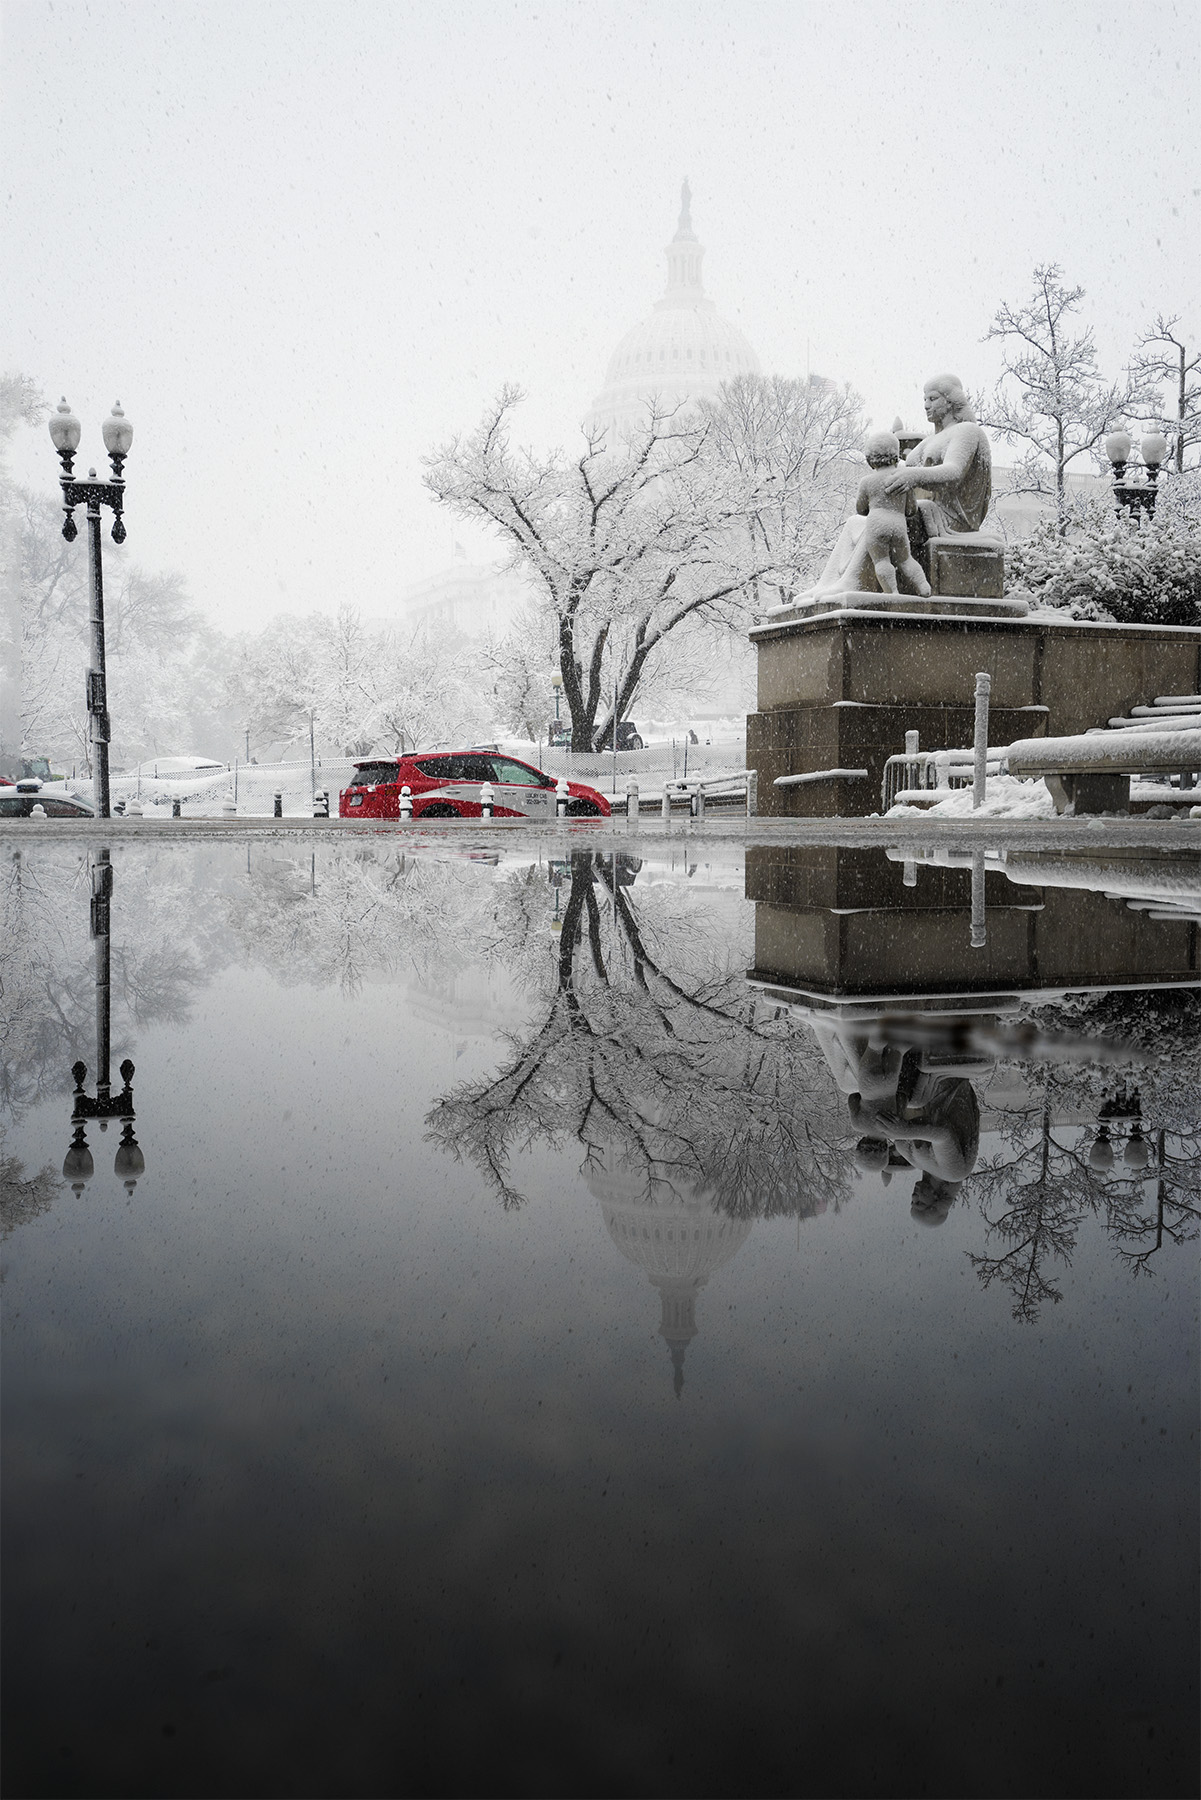 Snow Day, washington dc, us capitol, reflection, Rayburn House Office Building, House of representatives, government, spring, snow, white, trees, taxi, cab